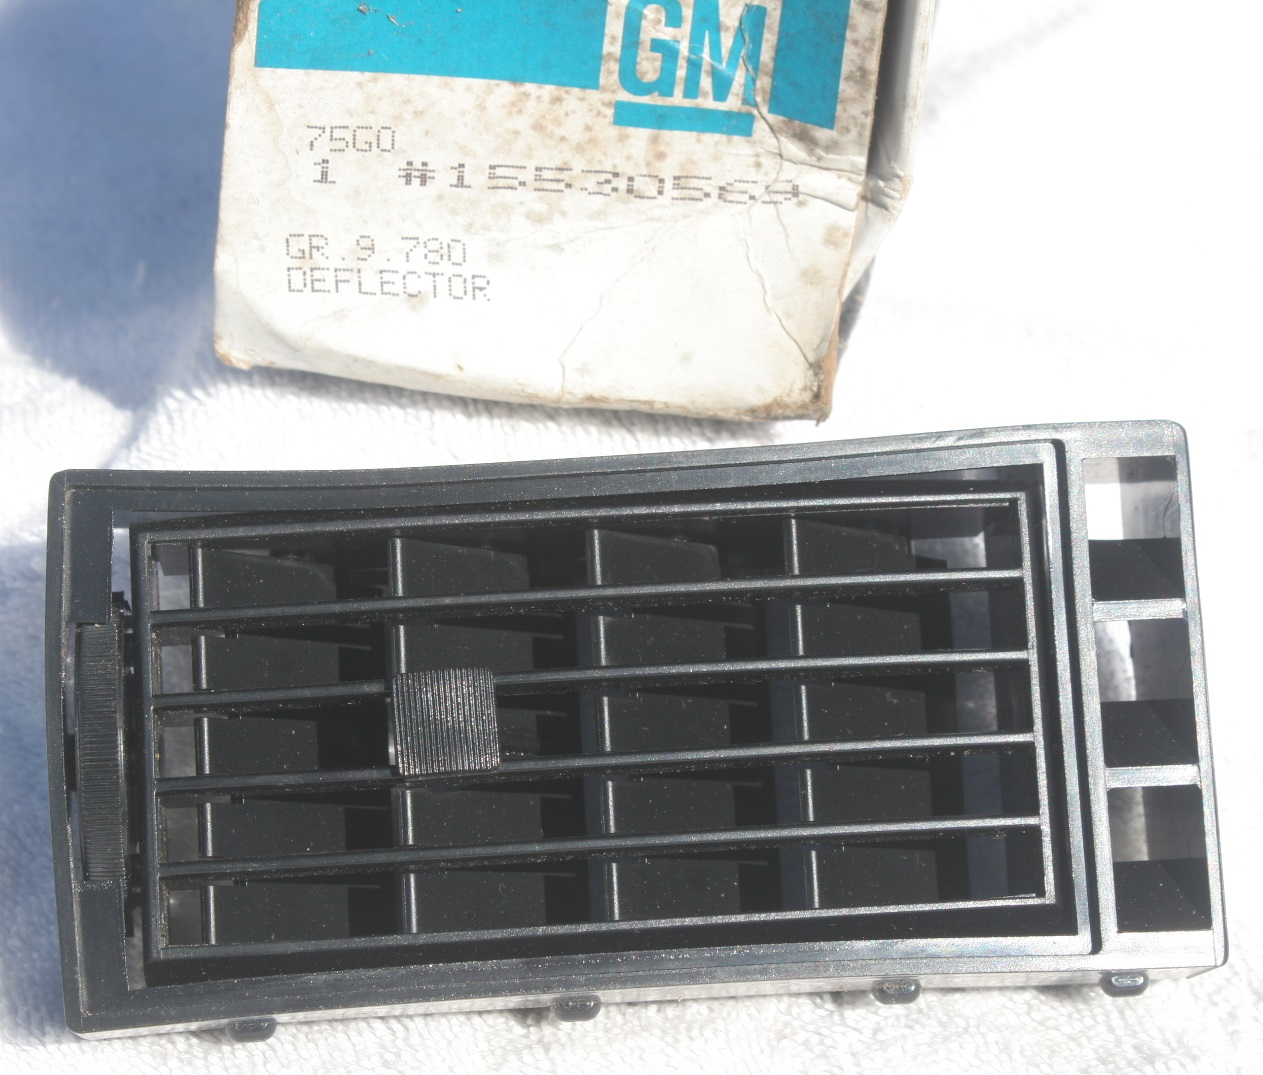 15530569, Deflector GM part